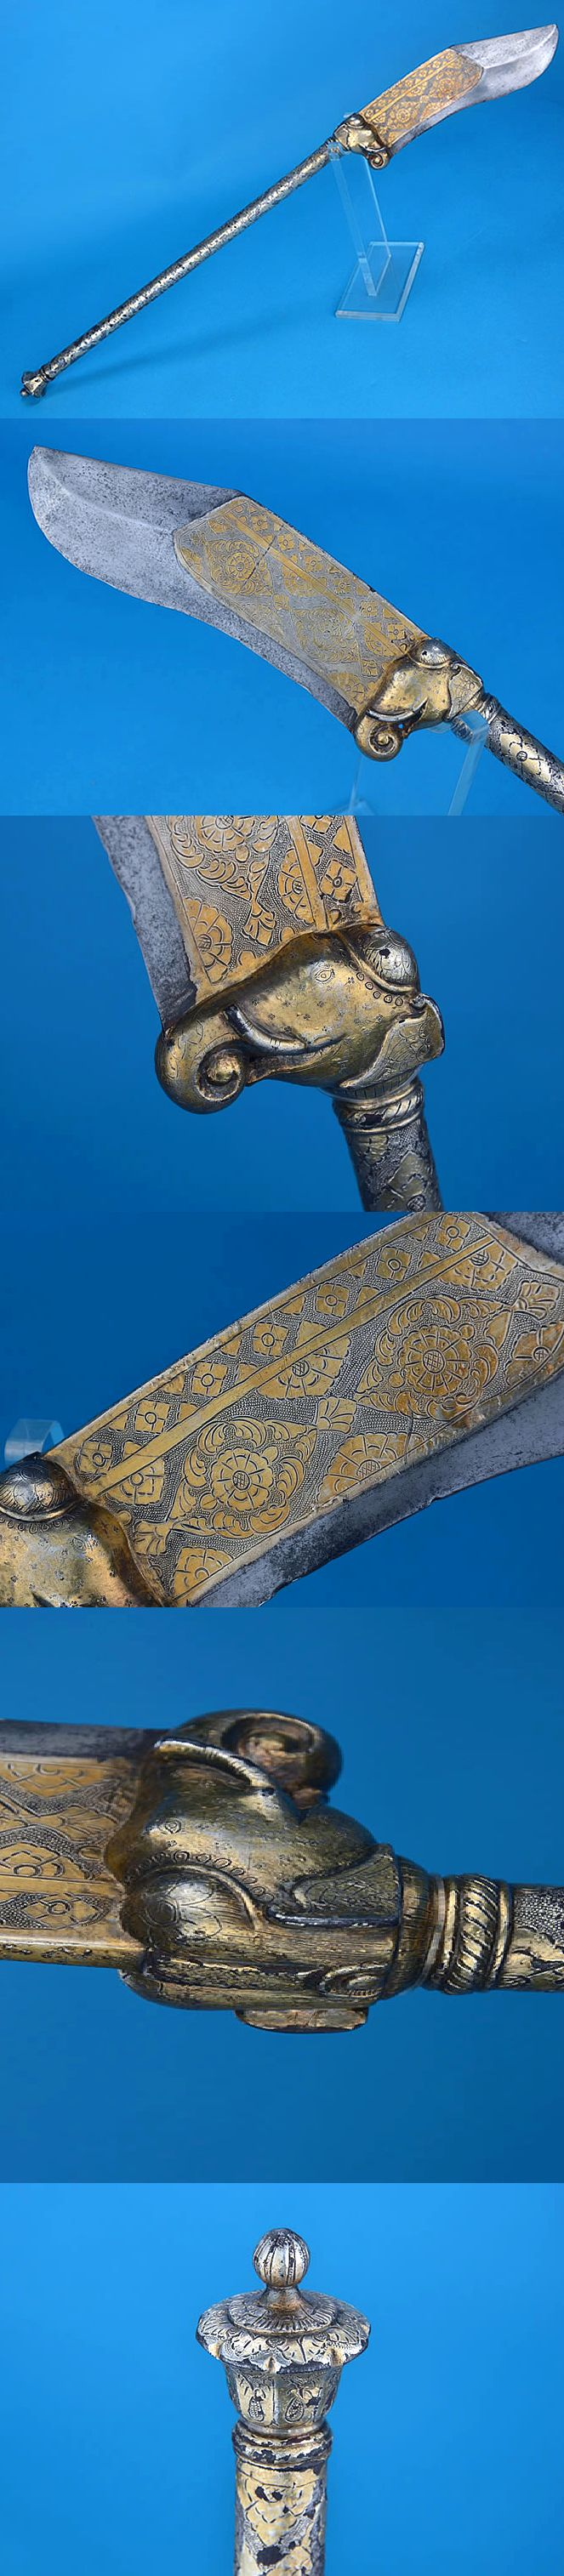 Bhuj Katti Place of Origin: India Date: 19thC. I'm not into weapons at all.. But wow!